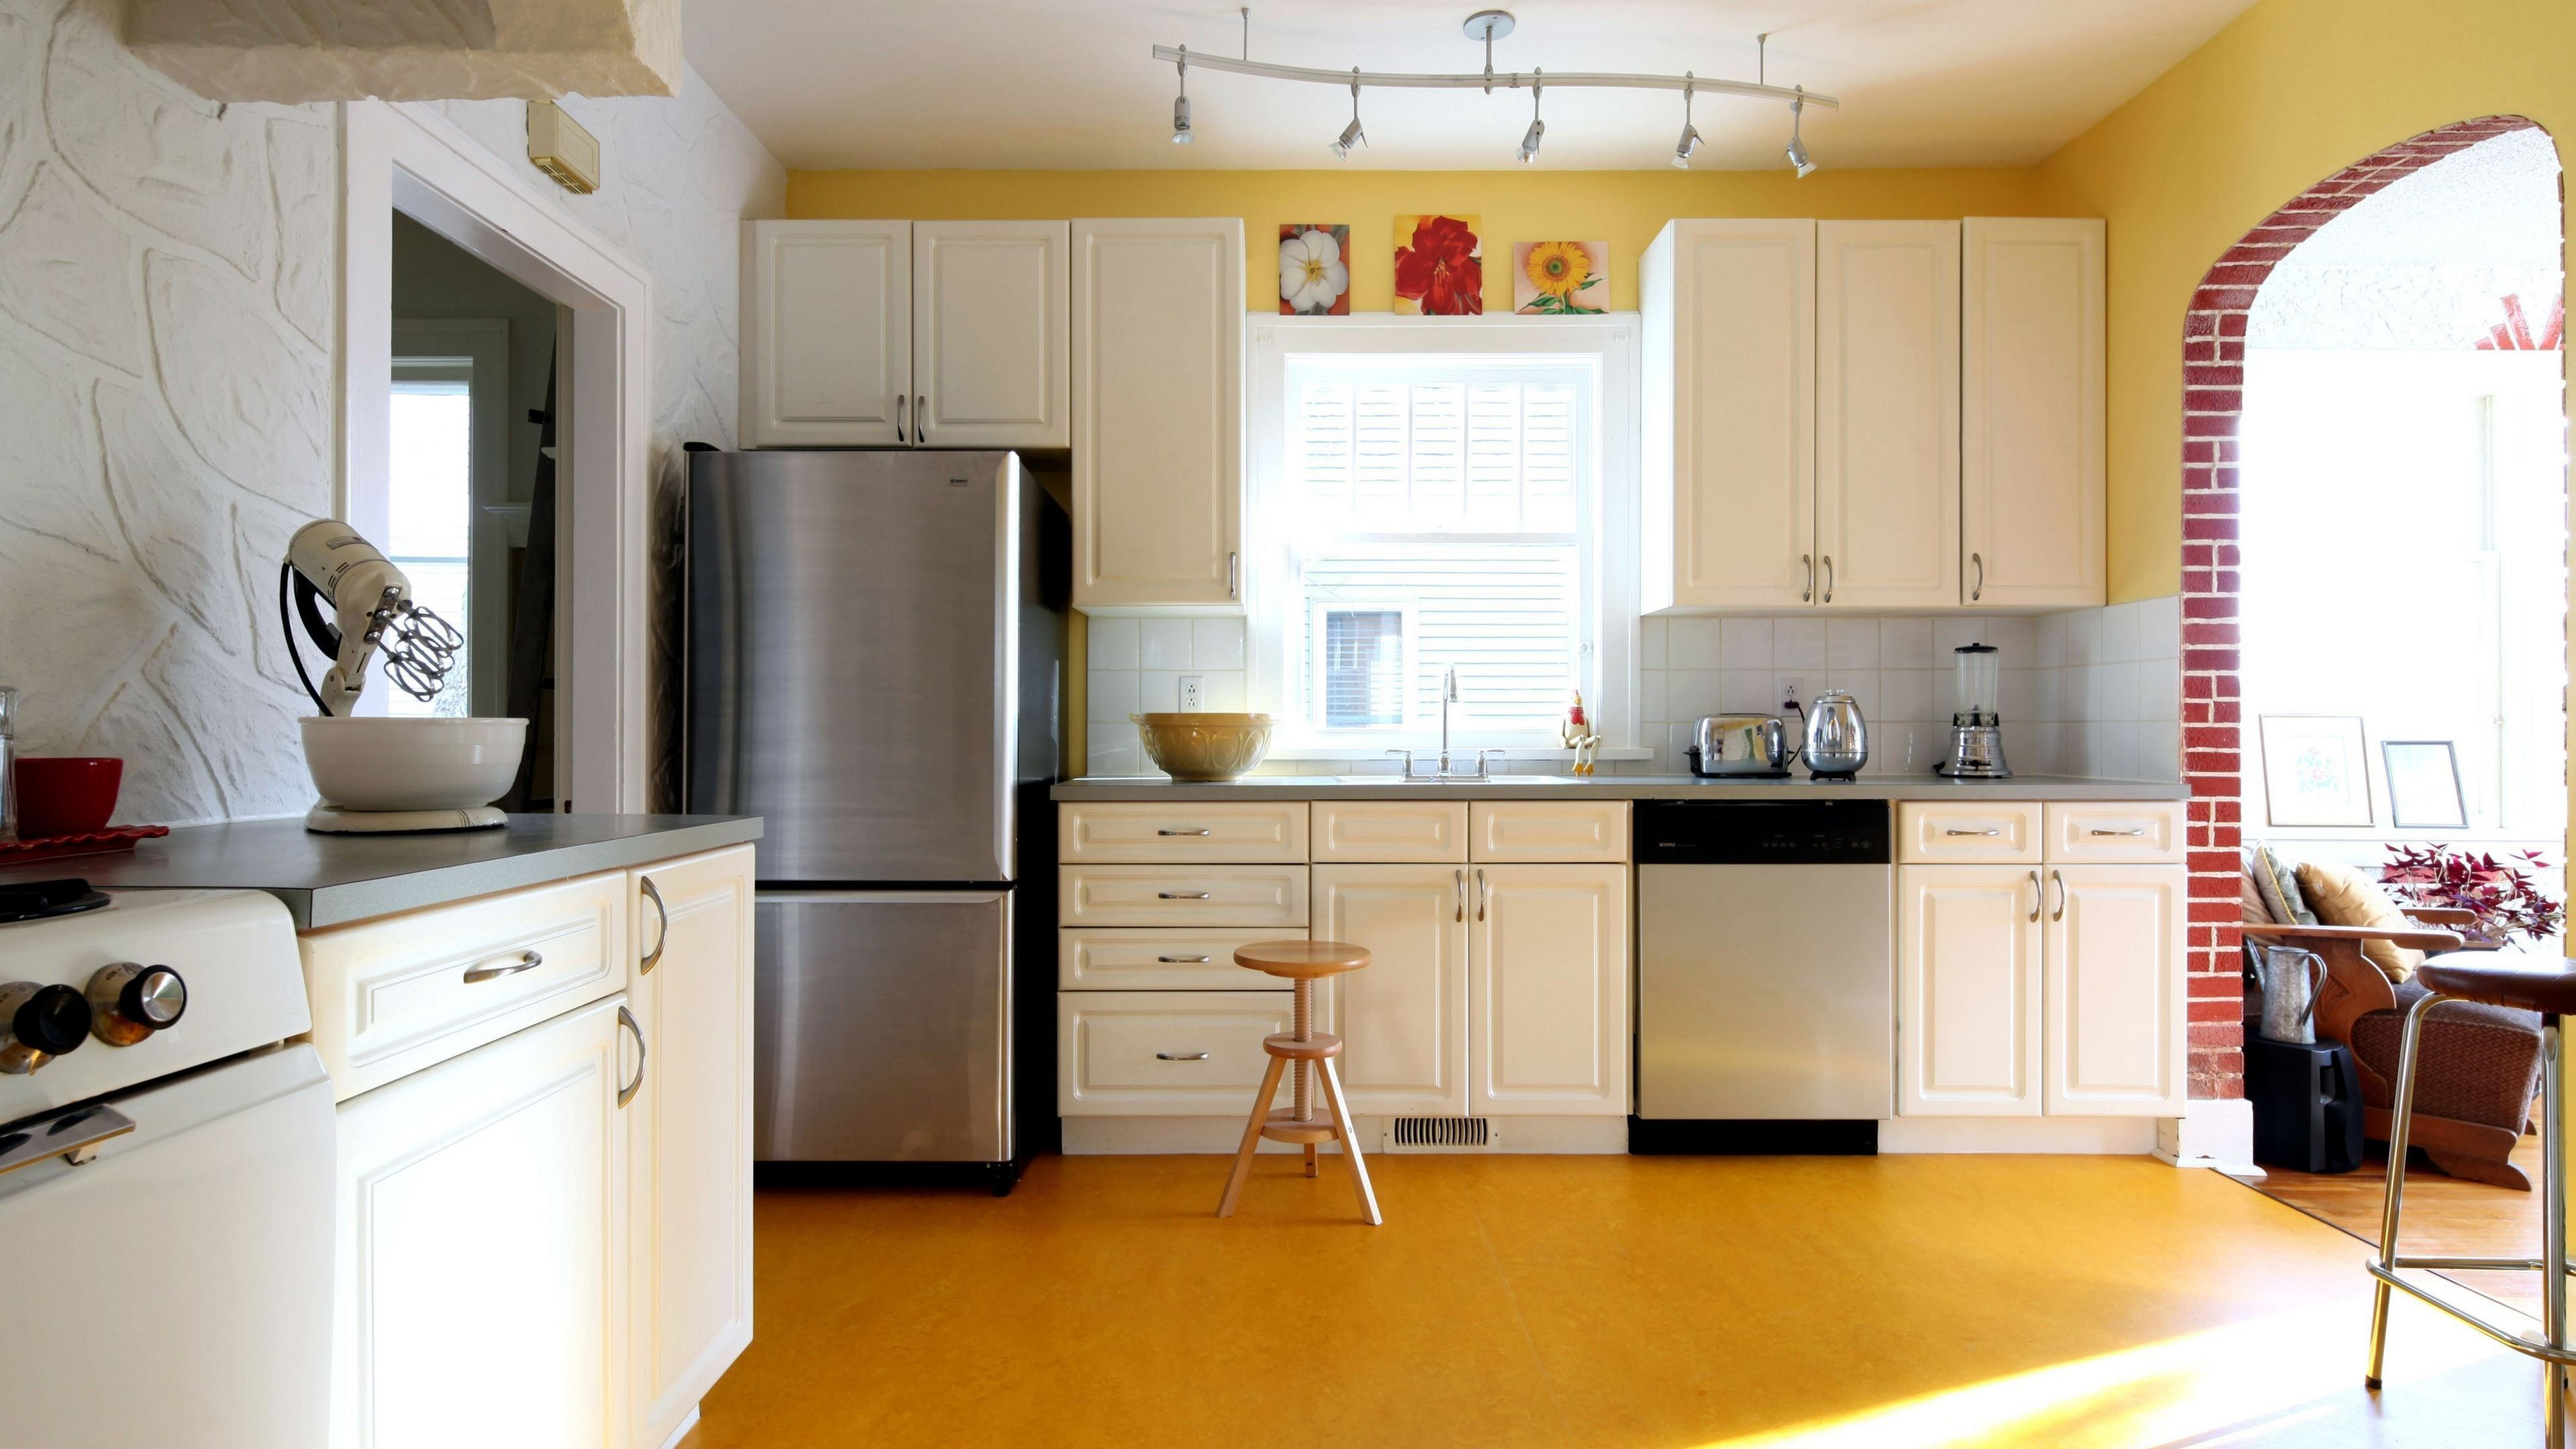 modular kitchen images awesome shaped top simple yellow floor ultra wallpaper imgprix with on kitchen ideas simple id=71142